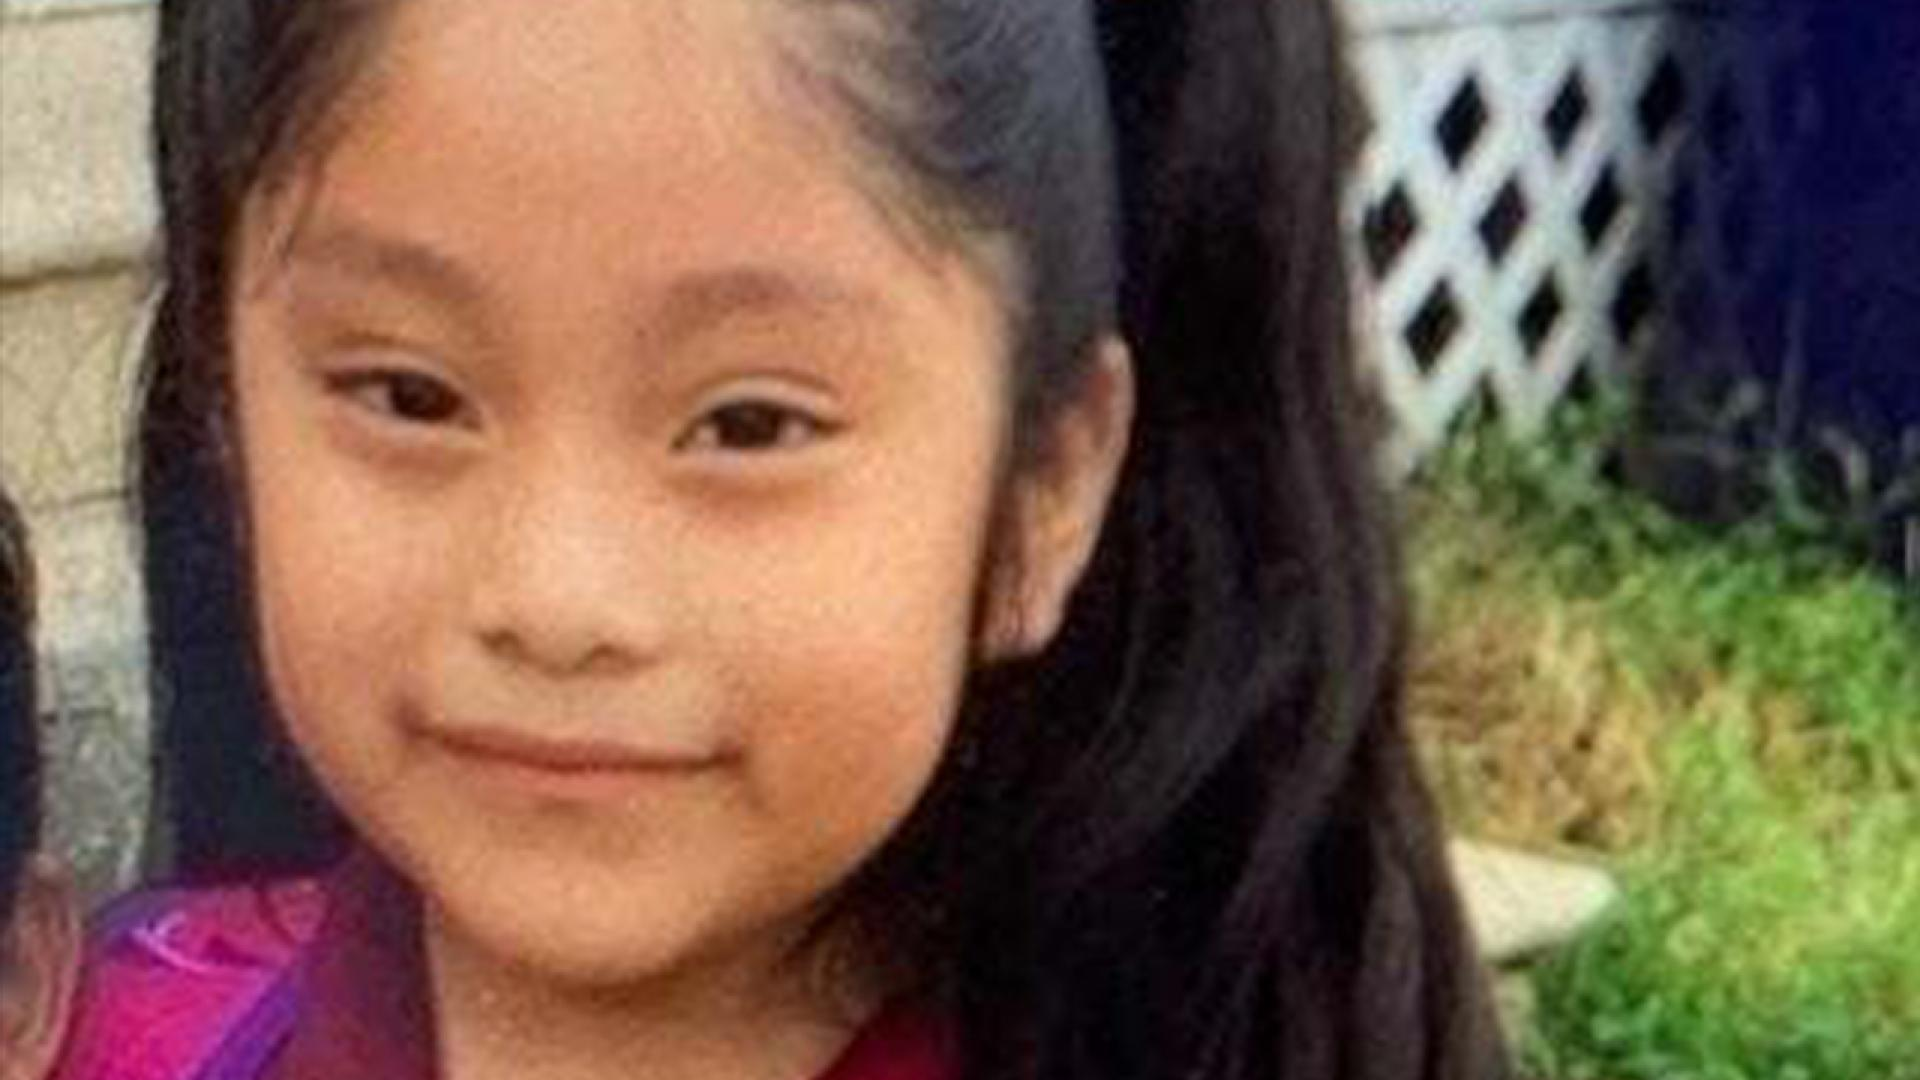 Dulce Maria Alavez vanished near a playground in Bridgeton, New Jersey in what investigators said may have been an abduction of opportunity.